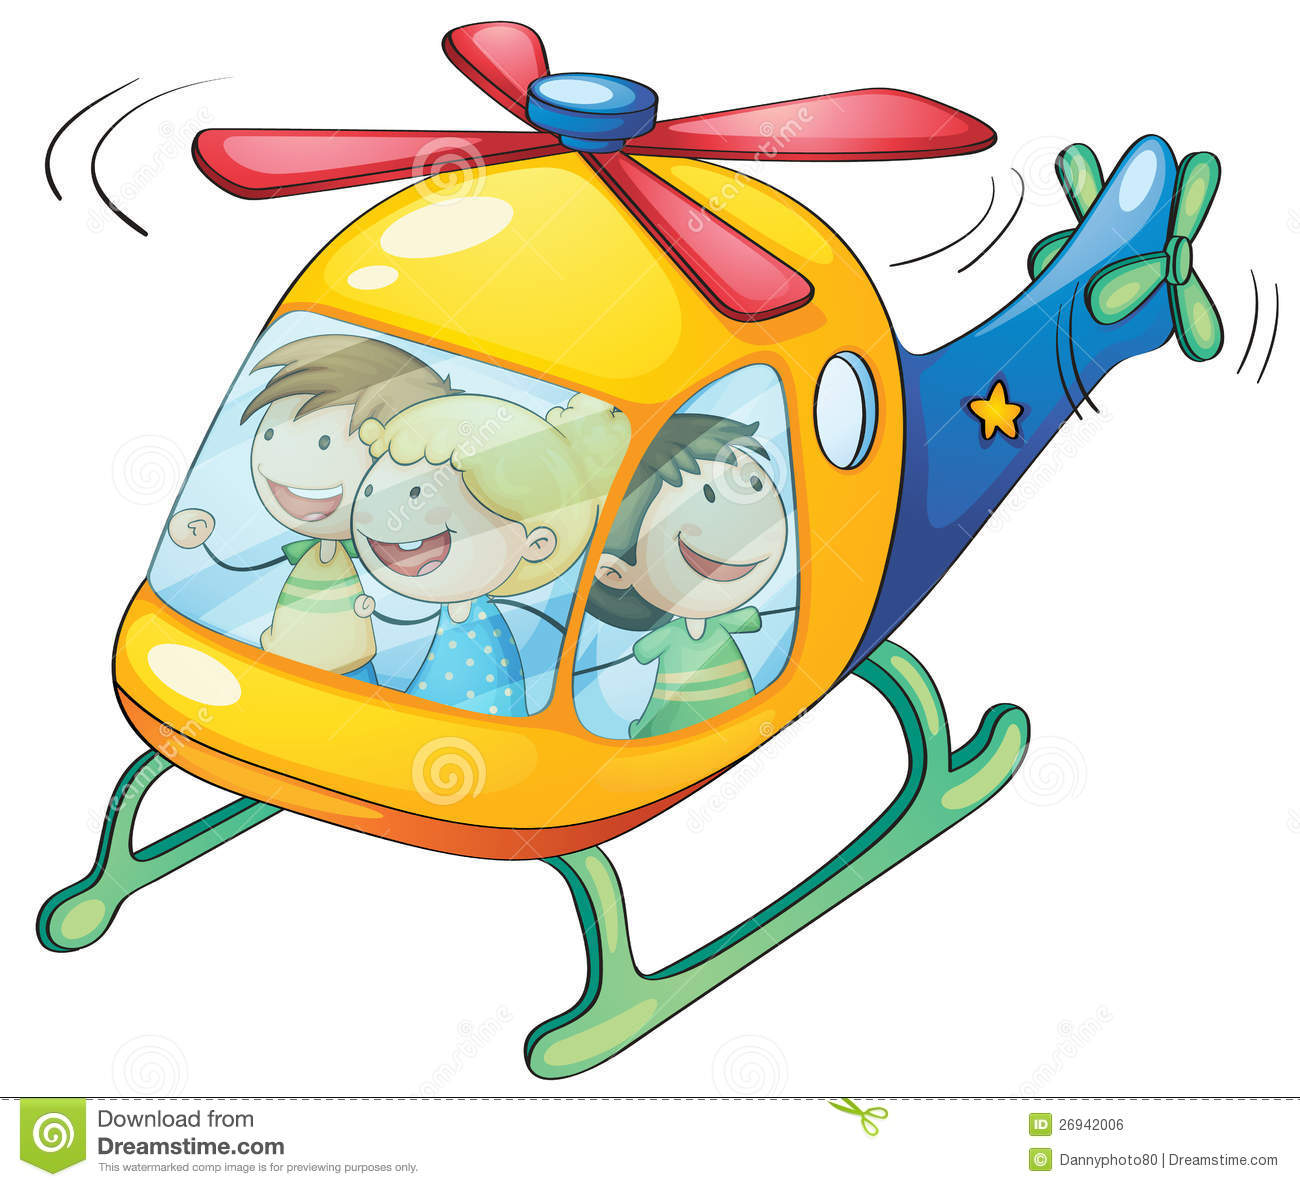 Elicottero Immagini Per Bambini : Kids in a helicopter royalty free stock image